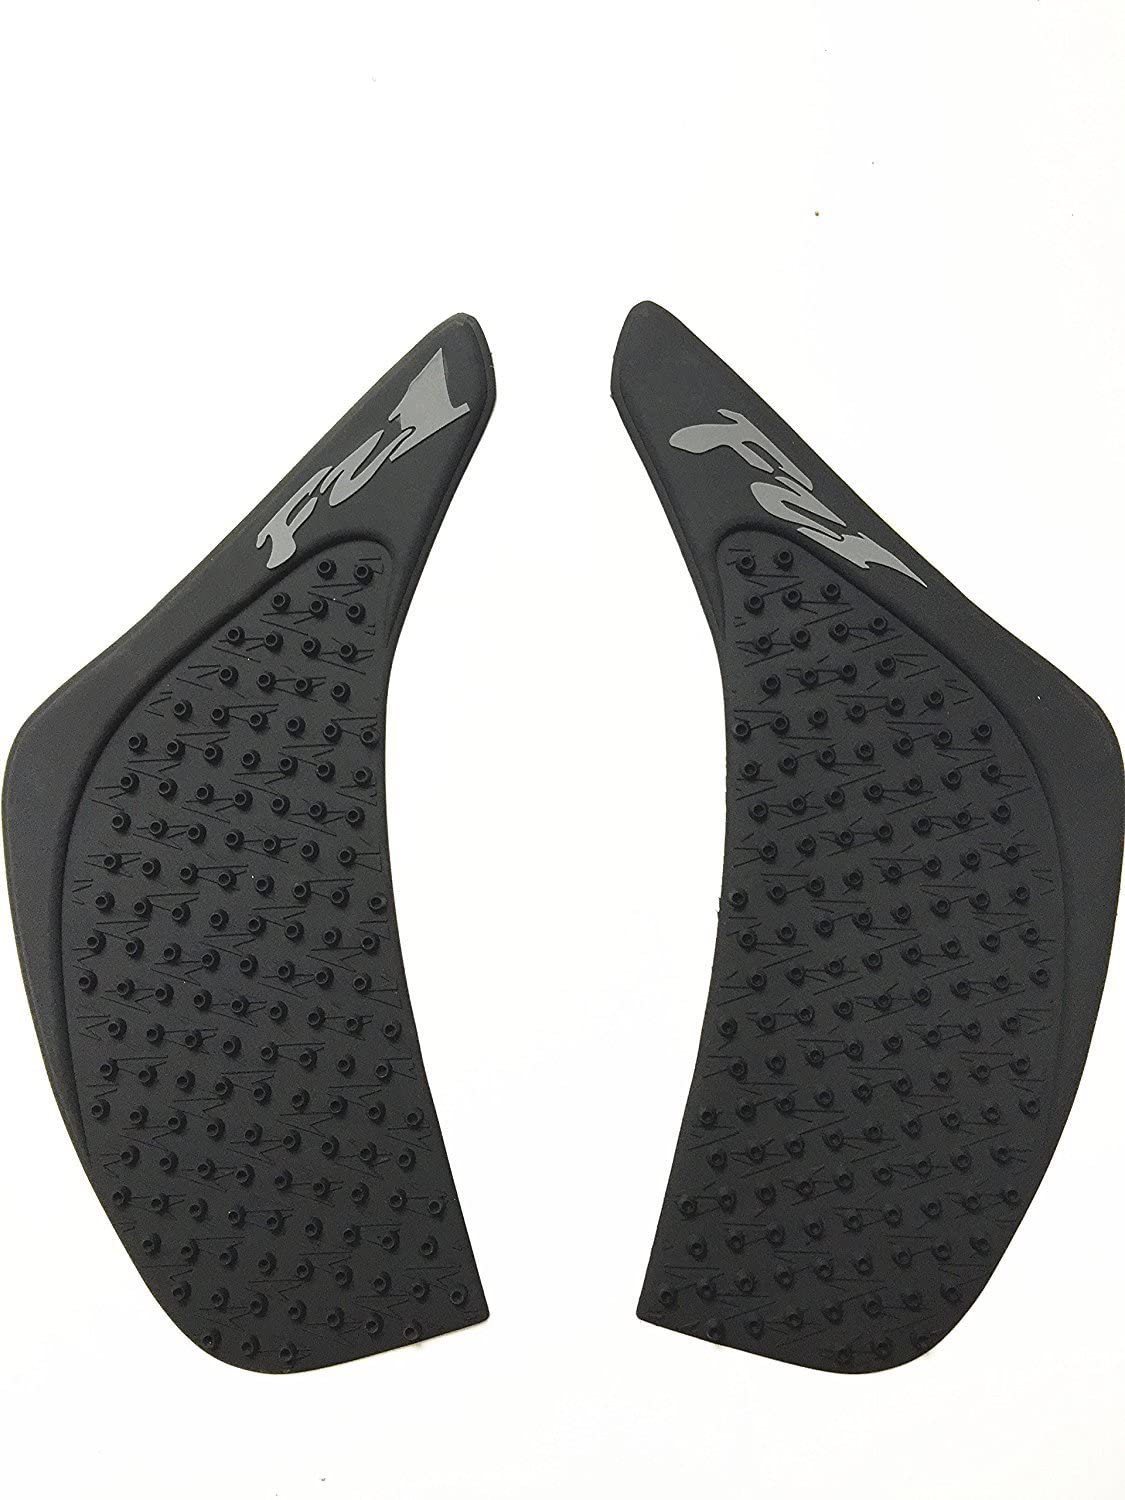 Tank Traction Pad Side Fuel Gas Grip Knee Decal Protector For Yamaha FZ6 06-10